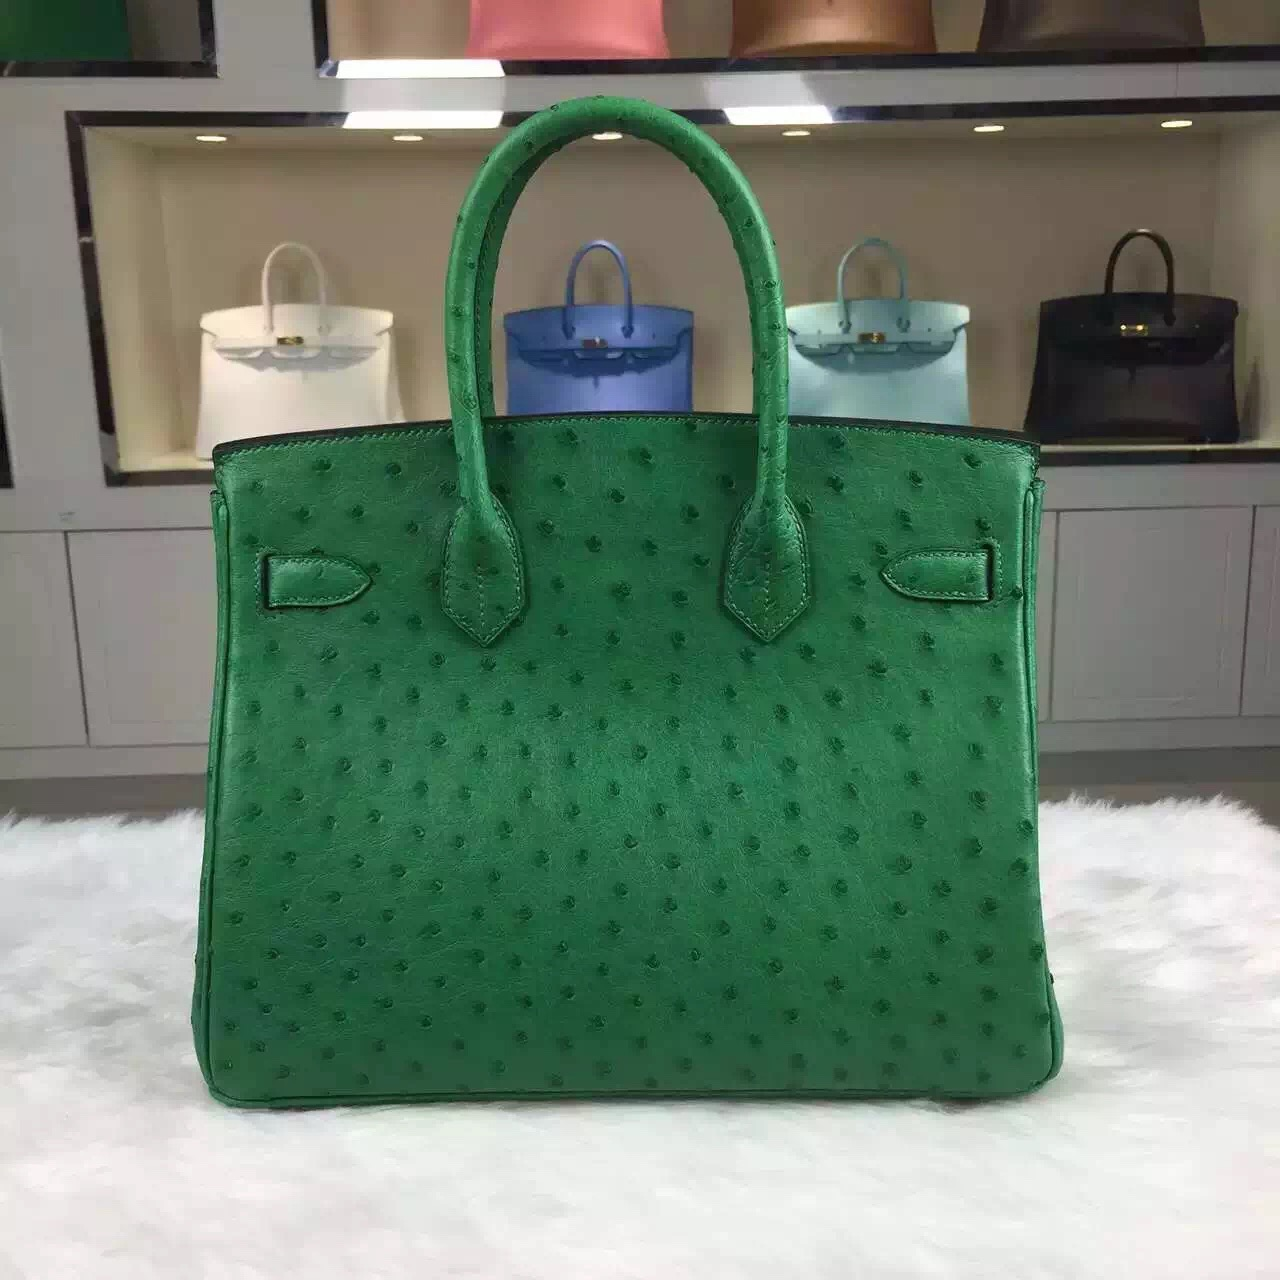 Online Shopping Hermes Ostrich Leather Birkin Bag 30CM in 1K Bamboo Green Ladies' Tote